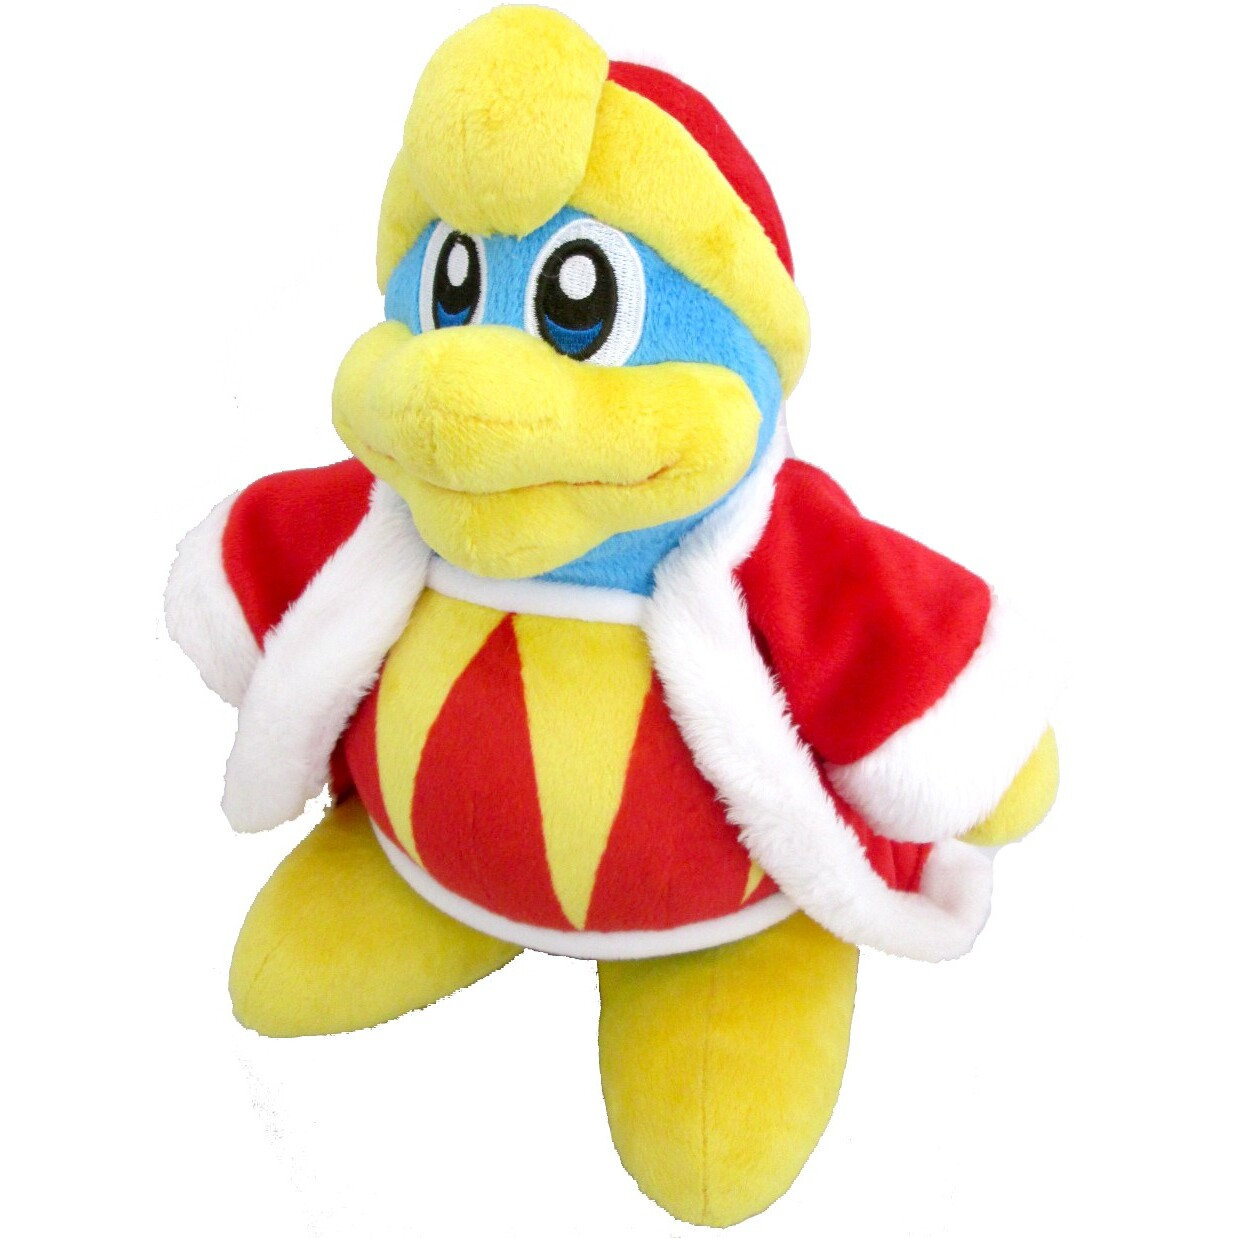 king-dedede-all-star-collection-plush (1)